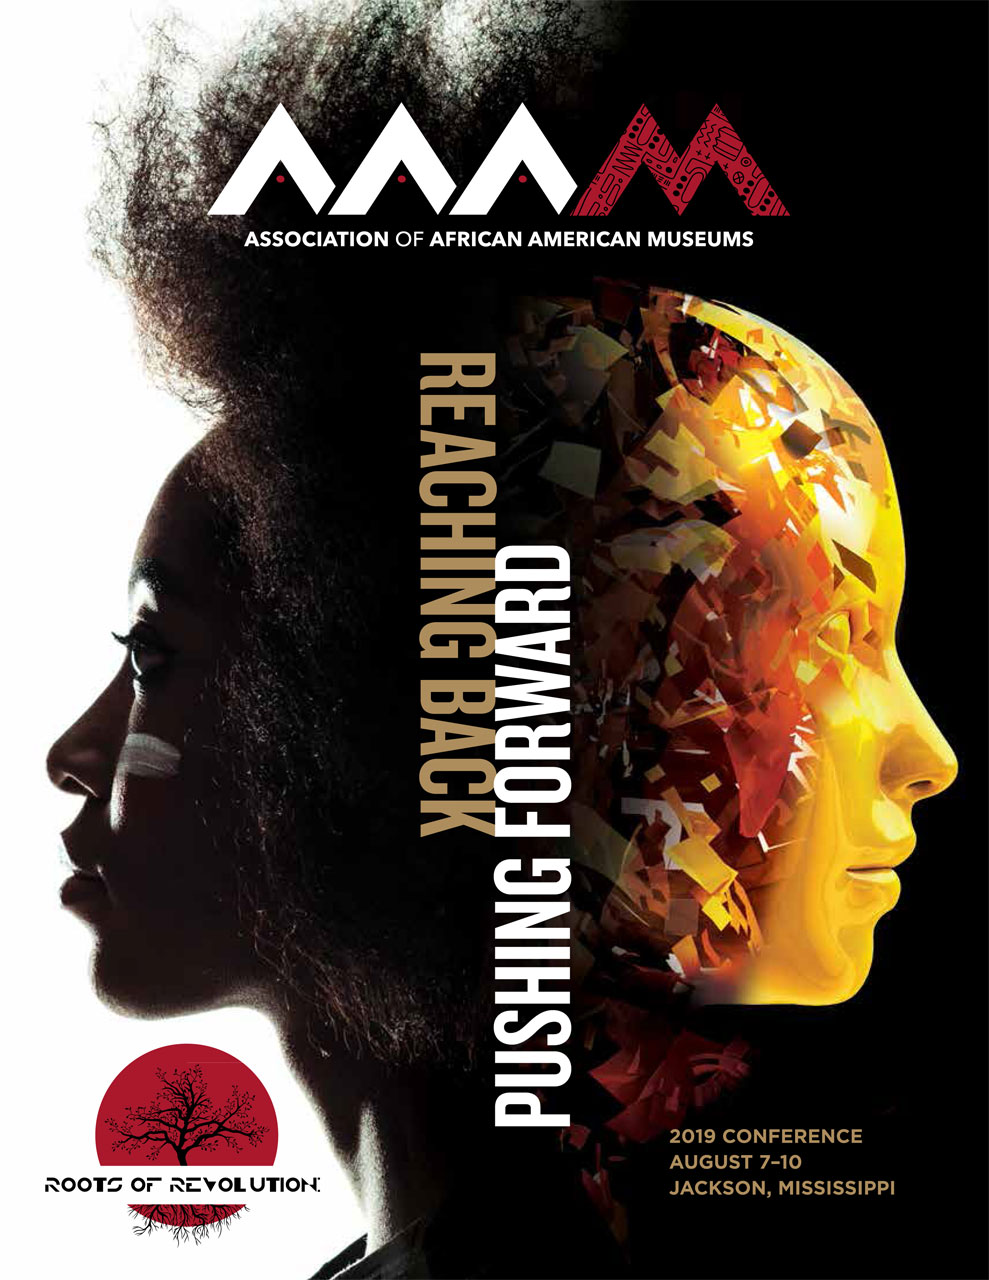 2019 Association of African American Museums conference program booklet cover